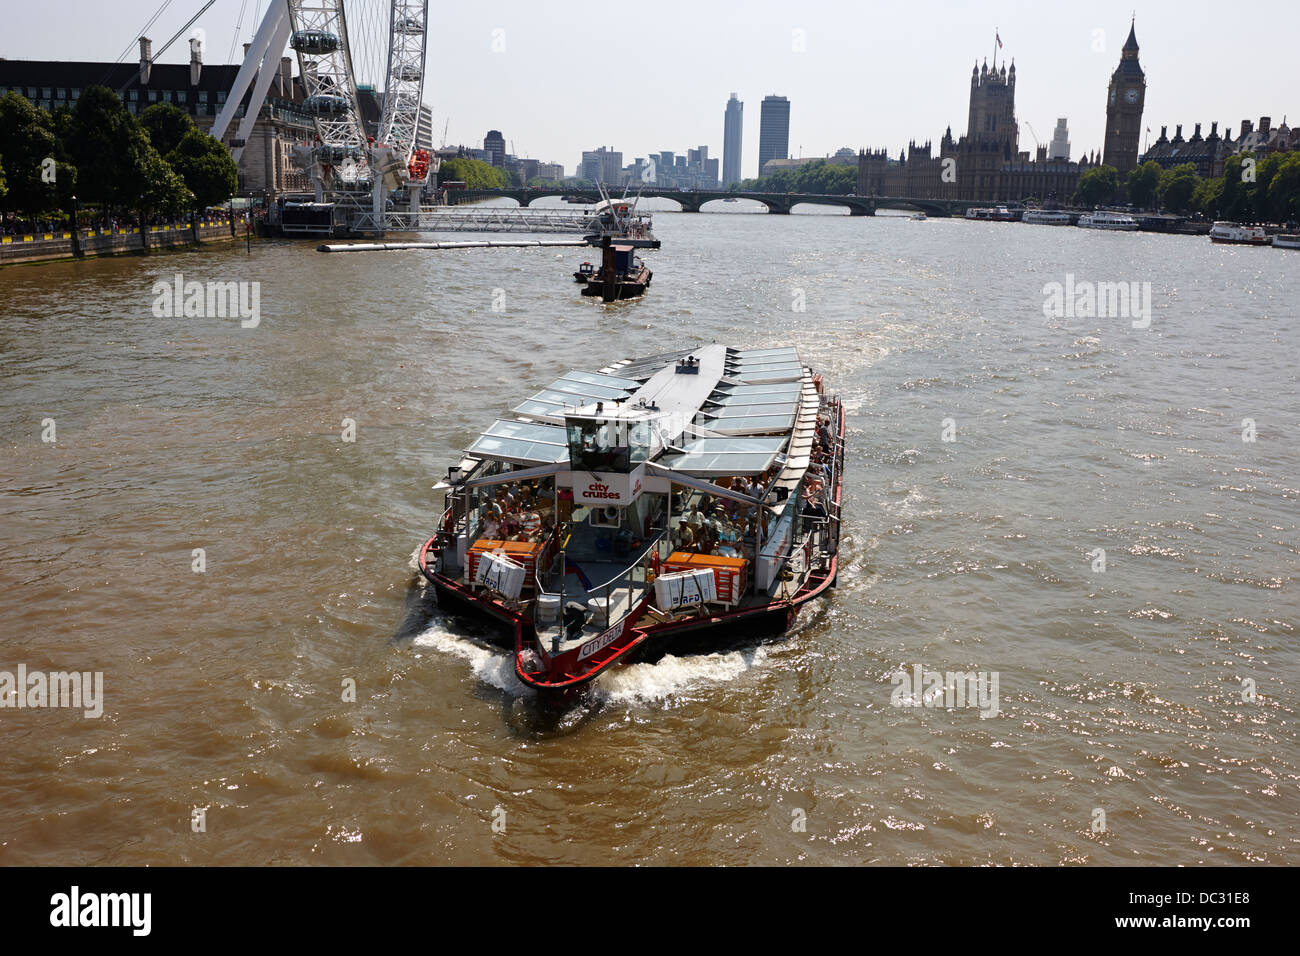 city cruises city delta boat on the river thames London England UK - Stock Image